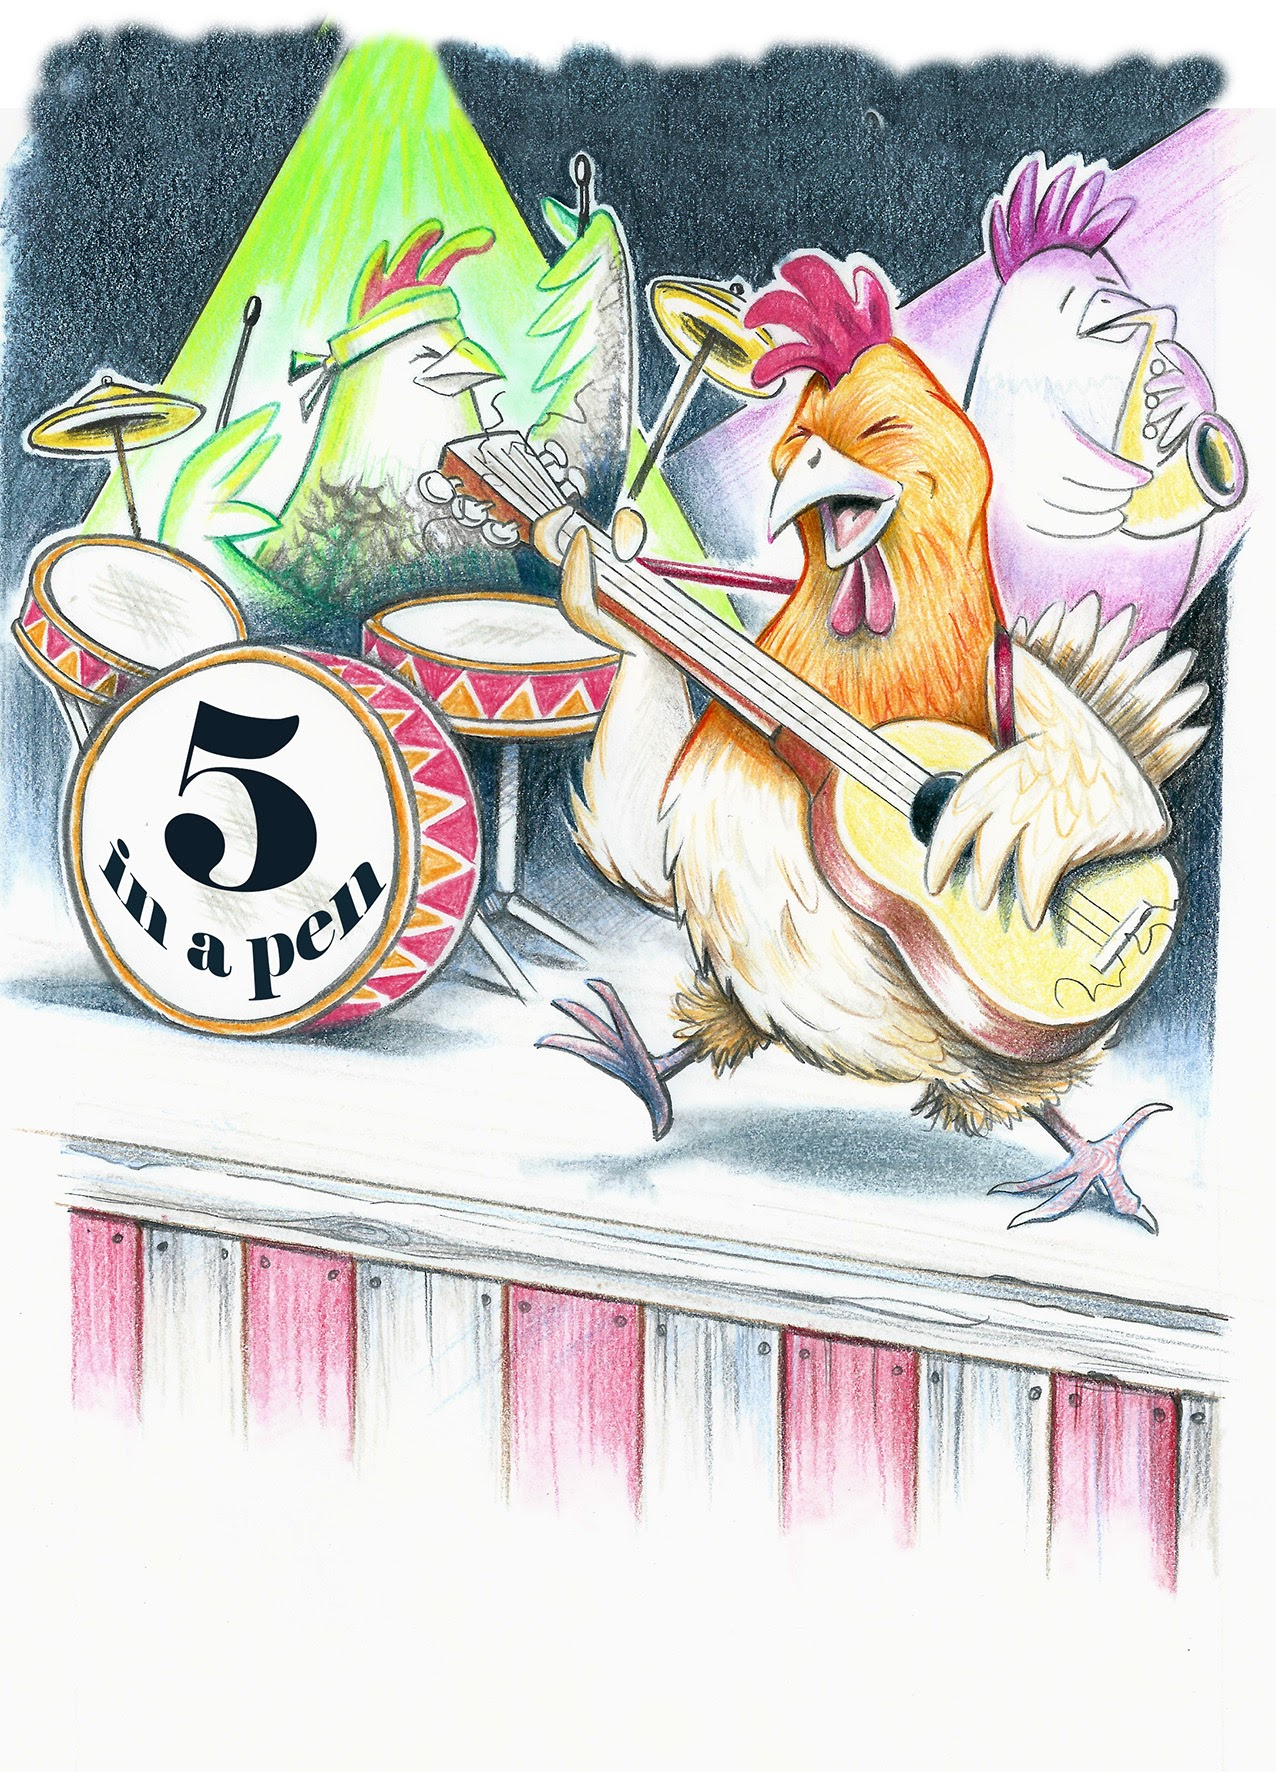 Delightful picture of the band of mother hens called Five in a Pen, from The Tales of Mr Mouse and Friends written by Jacqueline Mead, Illustrated by David Smith